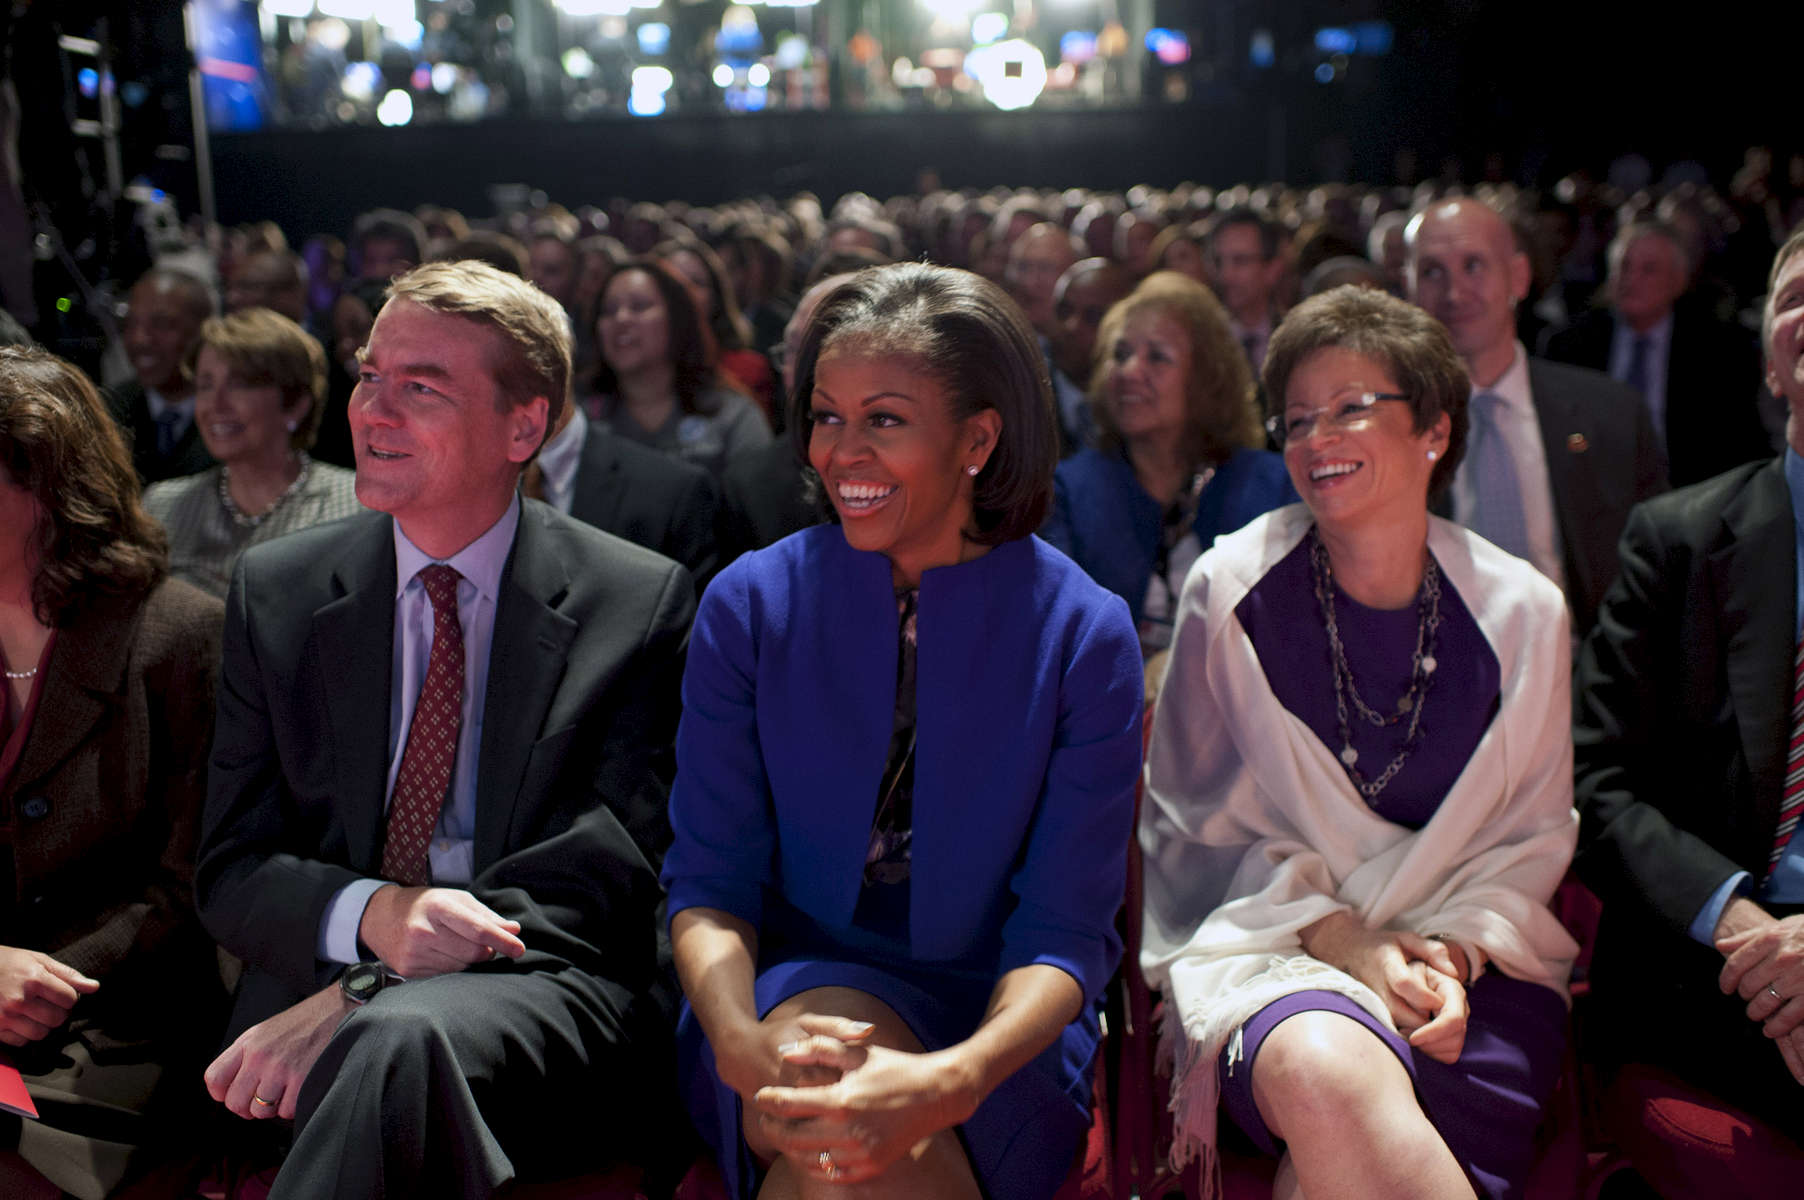 October 3, 2012 - Denver, CO:  First Lady Michelle Obama sits with Senator Michael Bennett and advisor Valerie Jarrett at the start of the first debate between President Barack Obama and former Governor Mitt Romney. (Scout Tufankjian for Obama for America/Polaris)